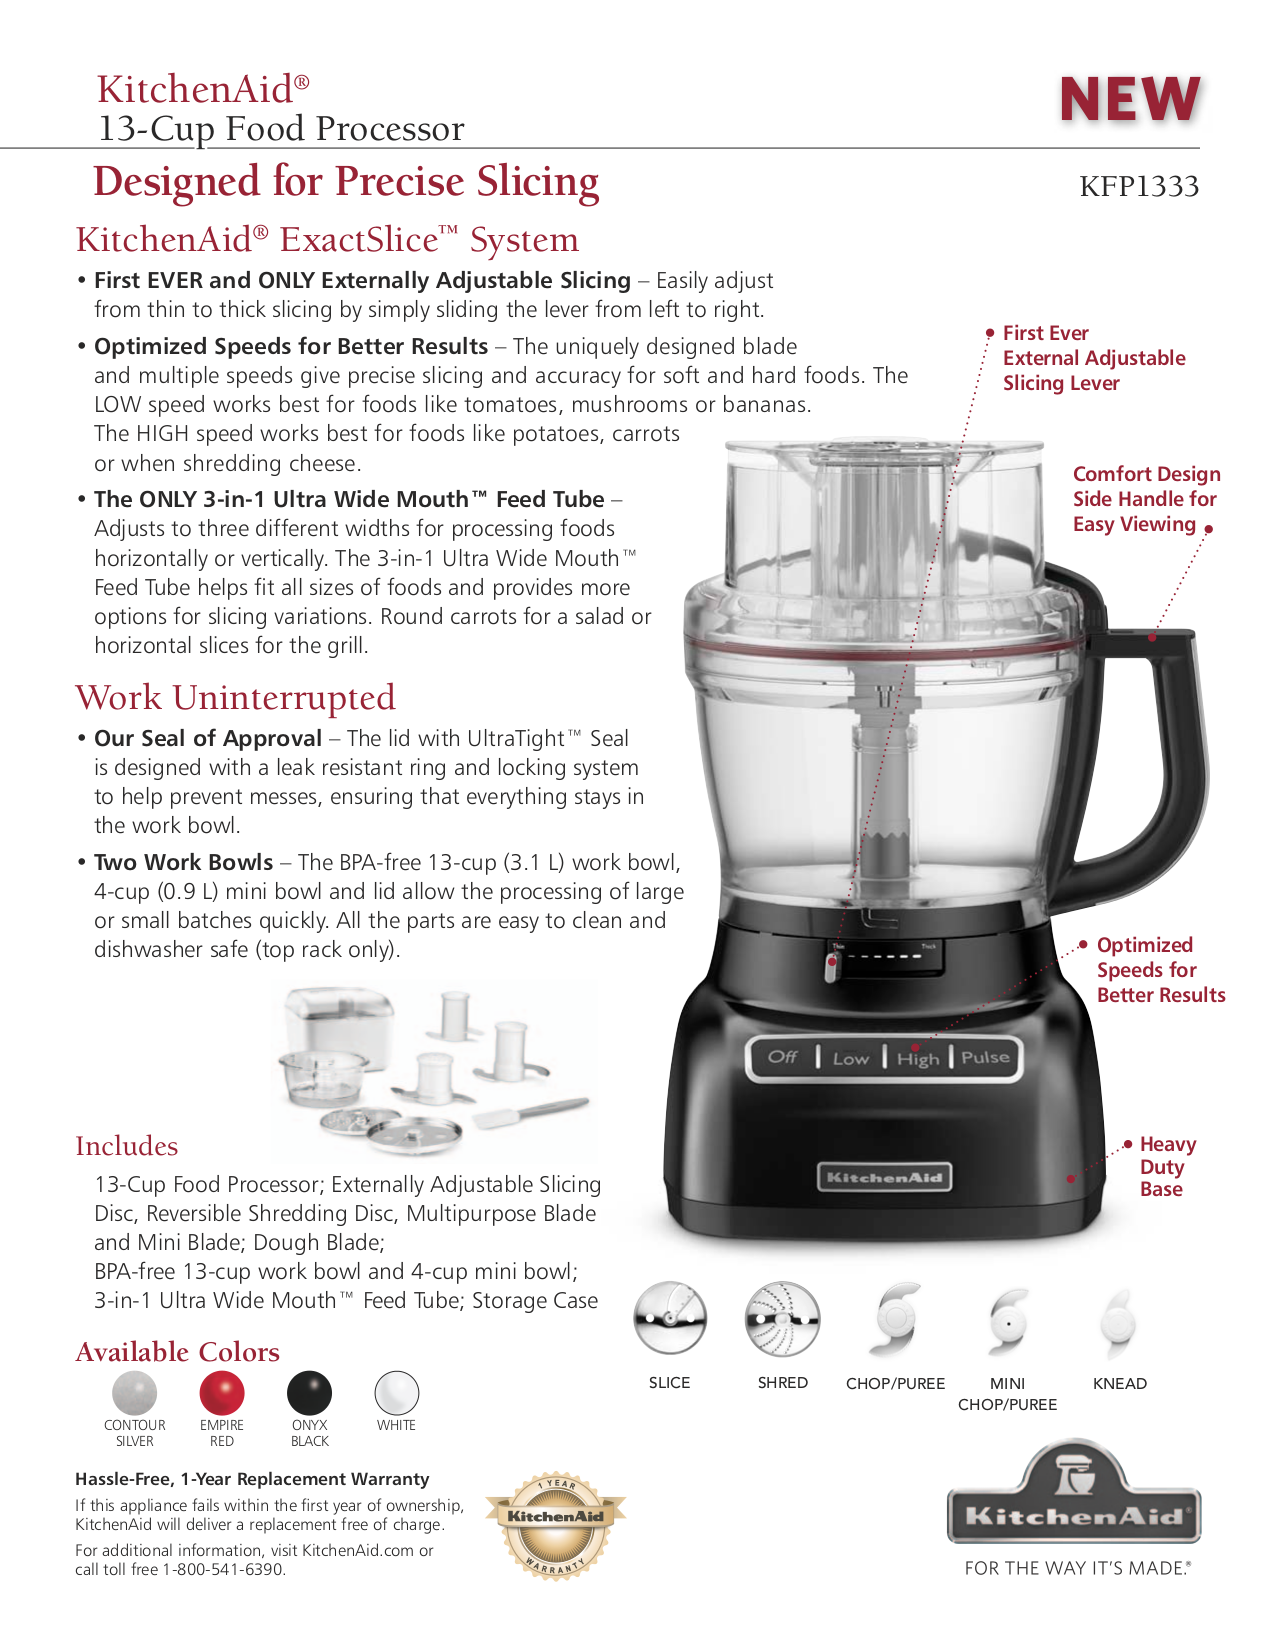 Perfect Pdf For KitchenAid Food Processor KFP1333 Manual